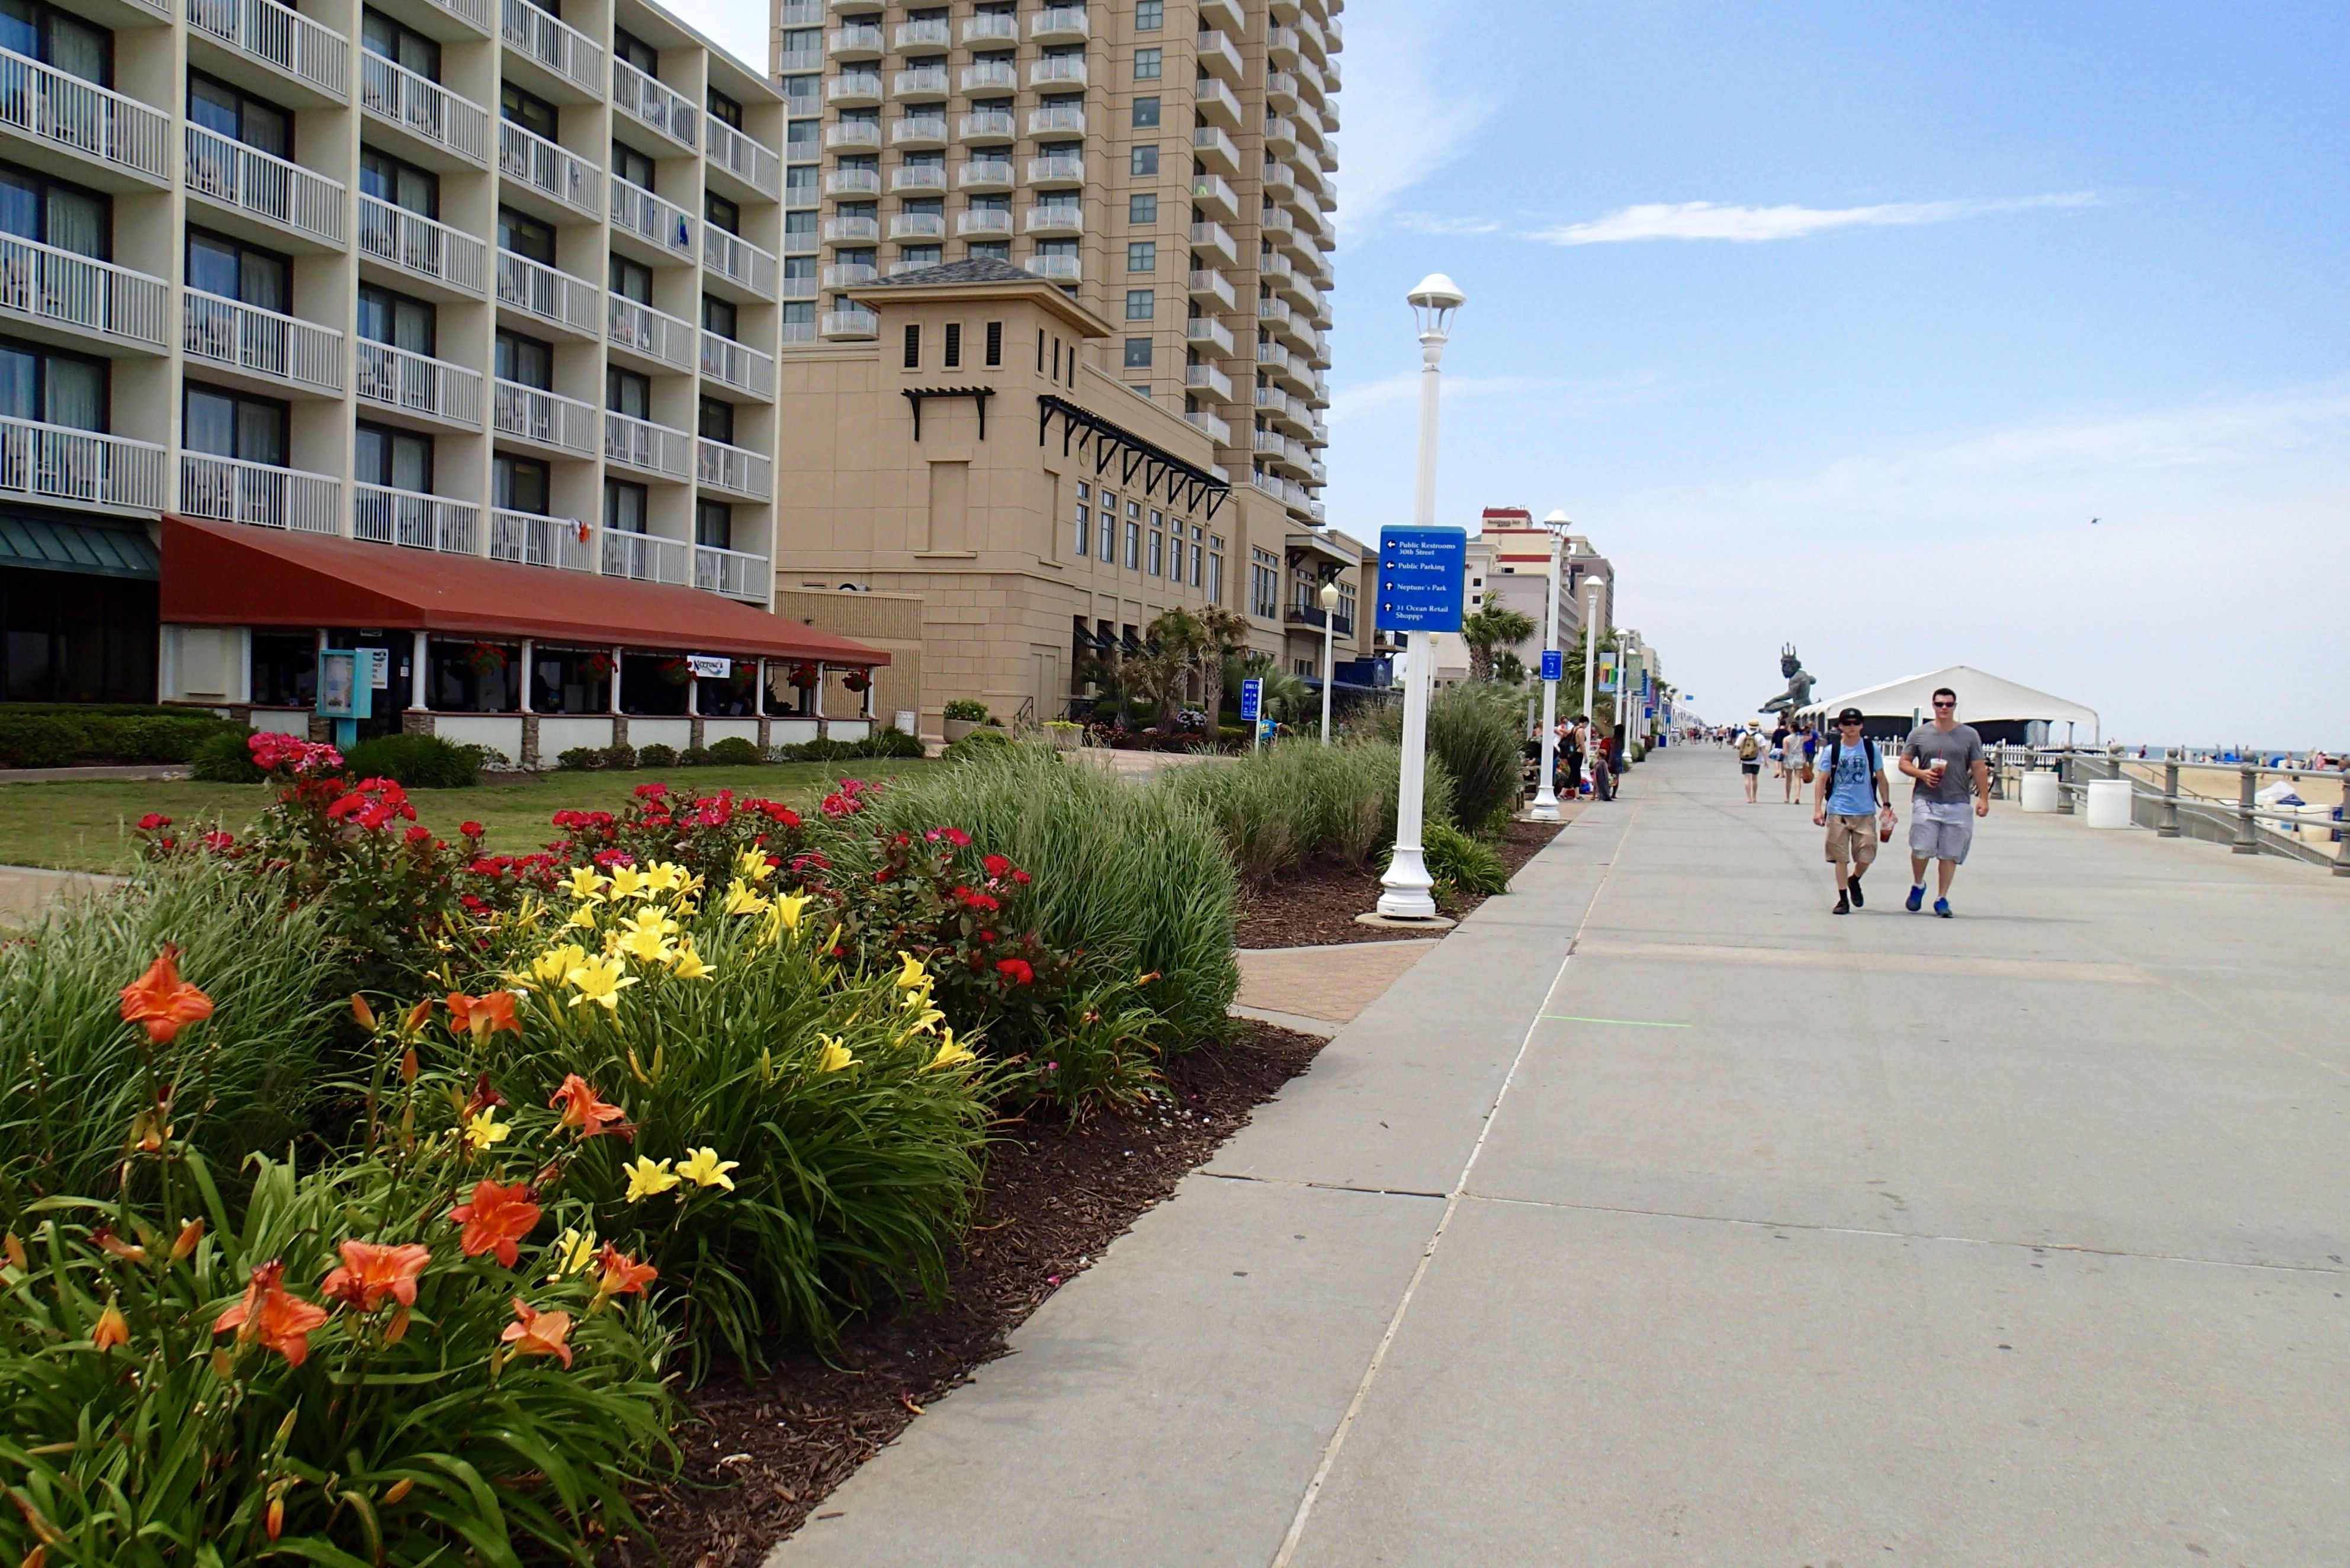 The Virginia Beach Boardwalk Is An Absolute Must While You Are Coming To Va Virginia Beach Boardwalk Virginia Beach Boardwalk Hotels Virginia Beach Restaurants